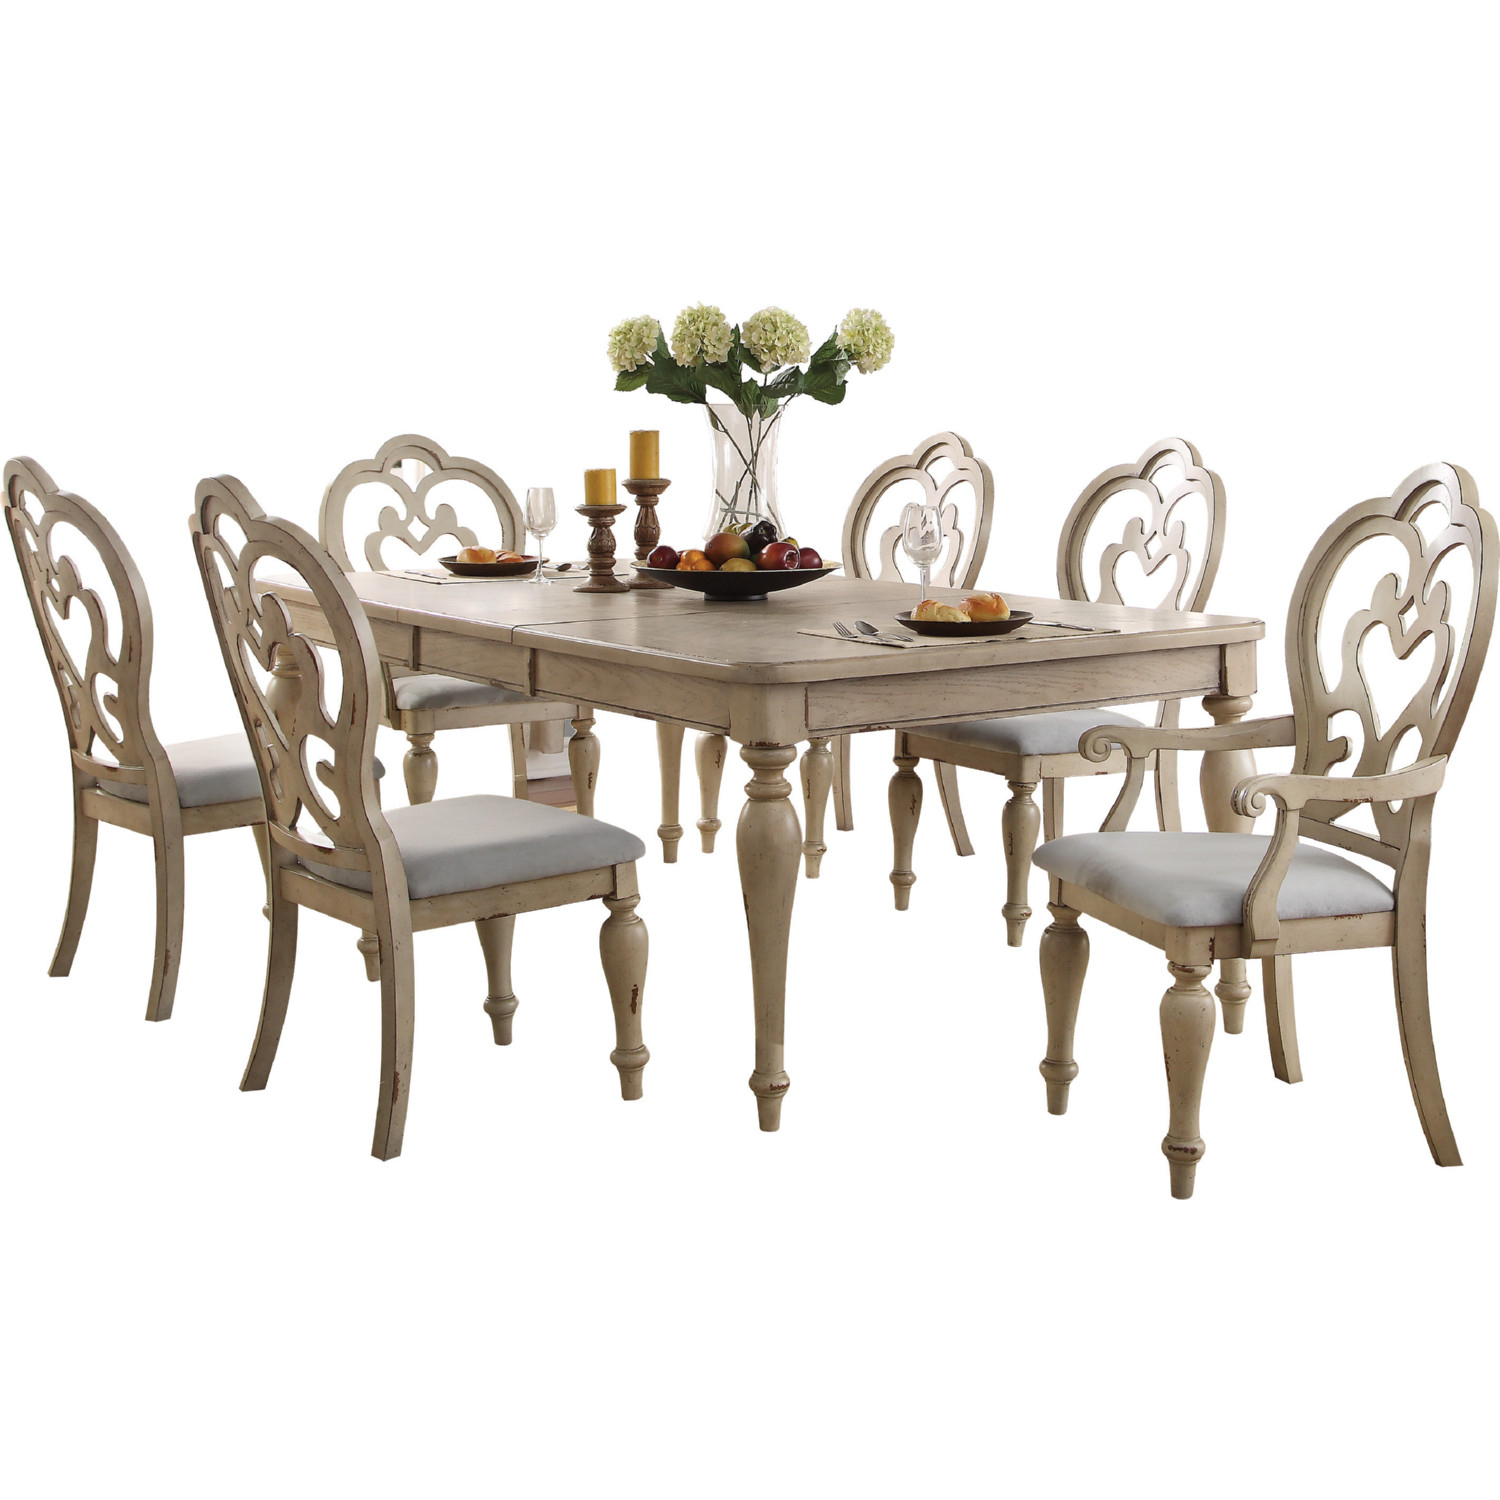 Chelmsford 3 Piece Dining Sets Intended For Favorite Acme 66052 Chelmsford Dining Chair In Beige Fabric & Antique Taupe (View 4 of 20)